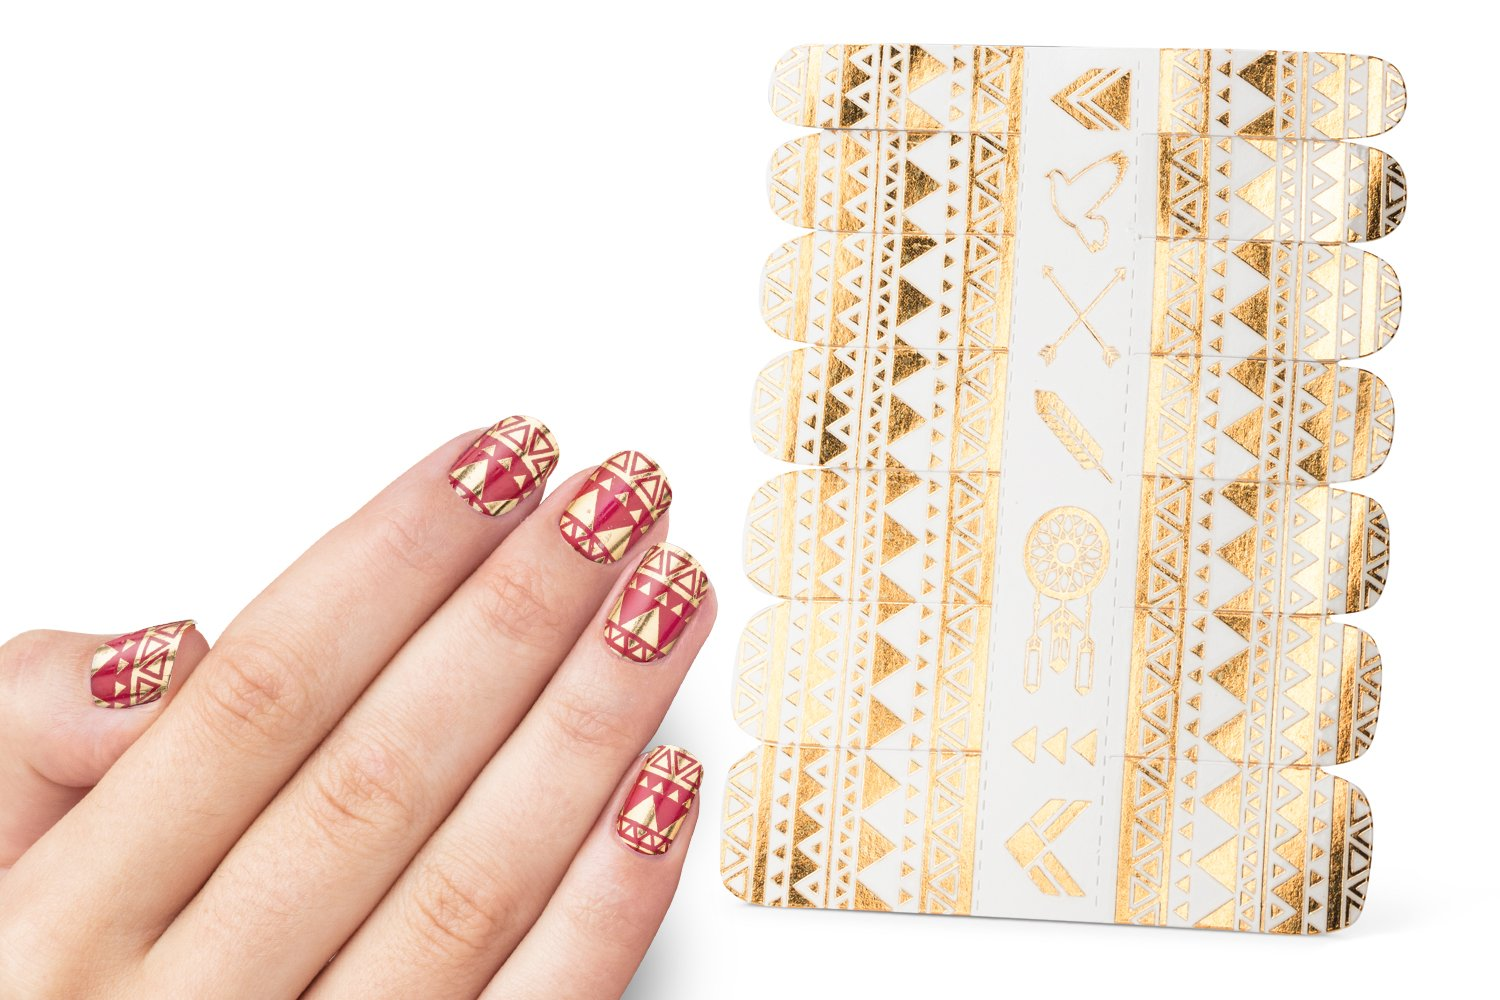 Nail Decals, Nail Tattoos Stickers, Water Nail Decals, Gold and Colorful Designs, Very easy to use for manicure. Each pakage consist Decals for 14 fingers. Brand MneTatu (Egypt)